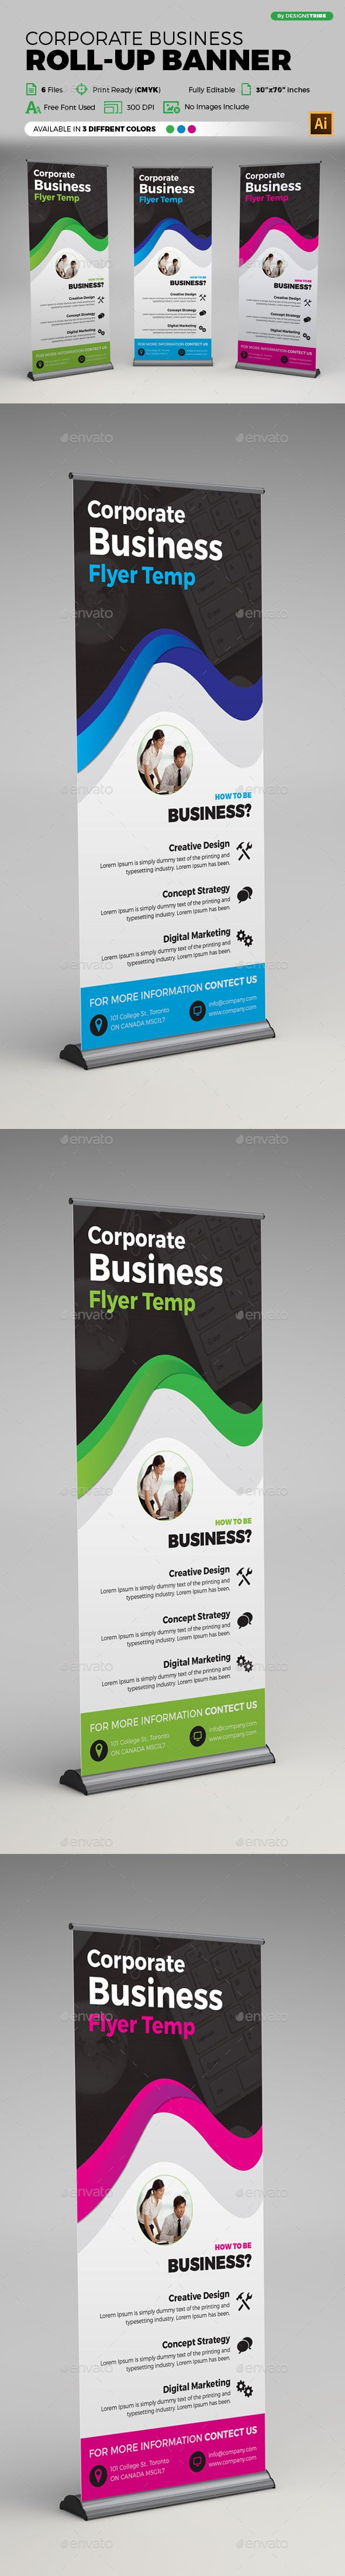 Corporate Business Roll-up Banner Template Vector EPS, AI